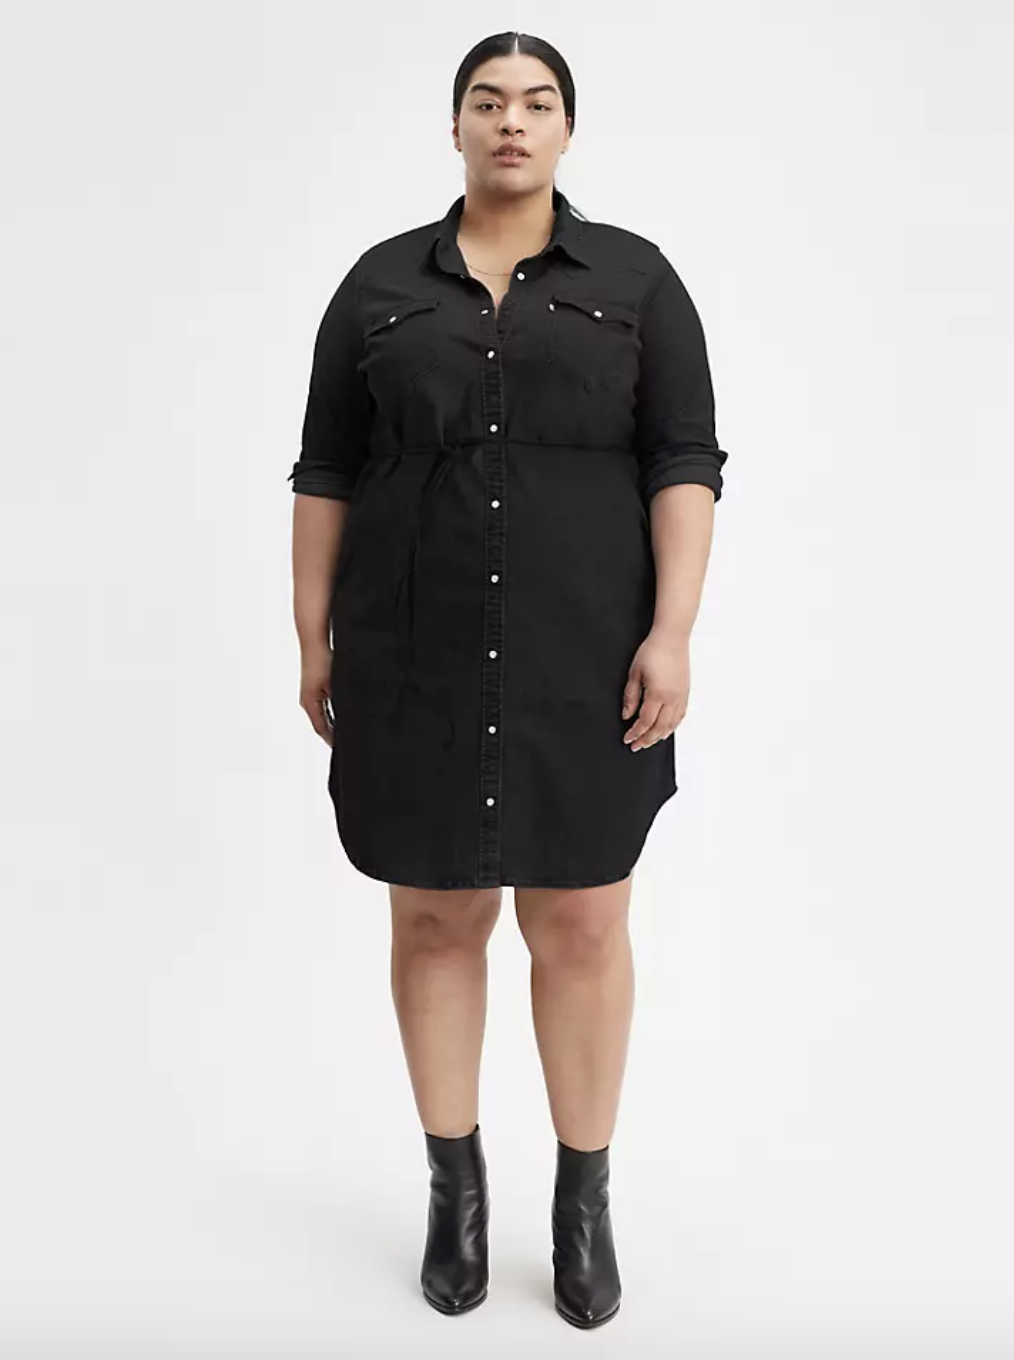 Model in a black button up collared long sleeved shirt dress that cinches at the waist